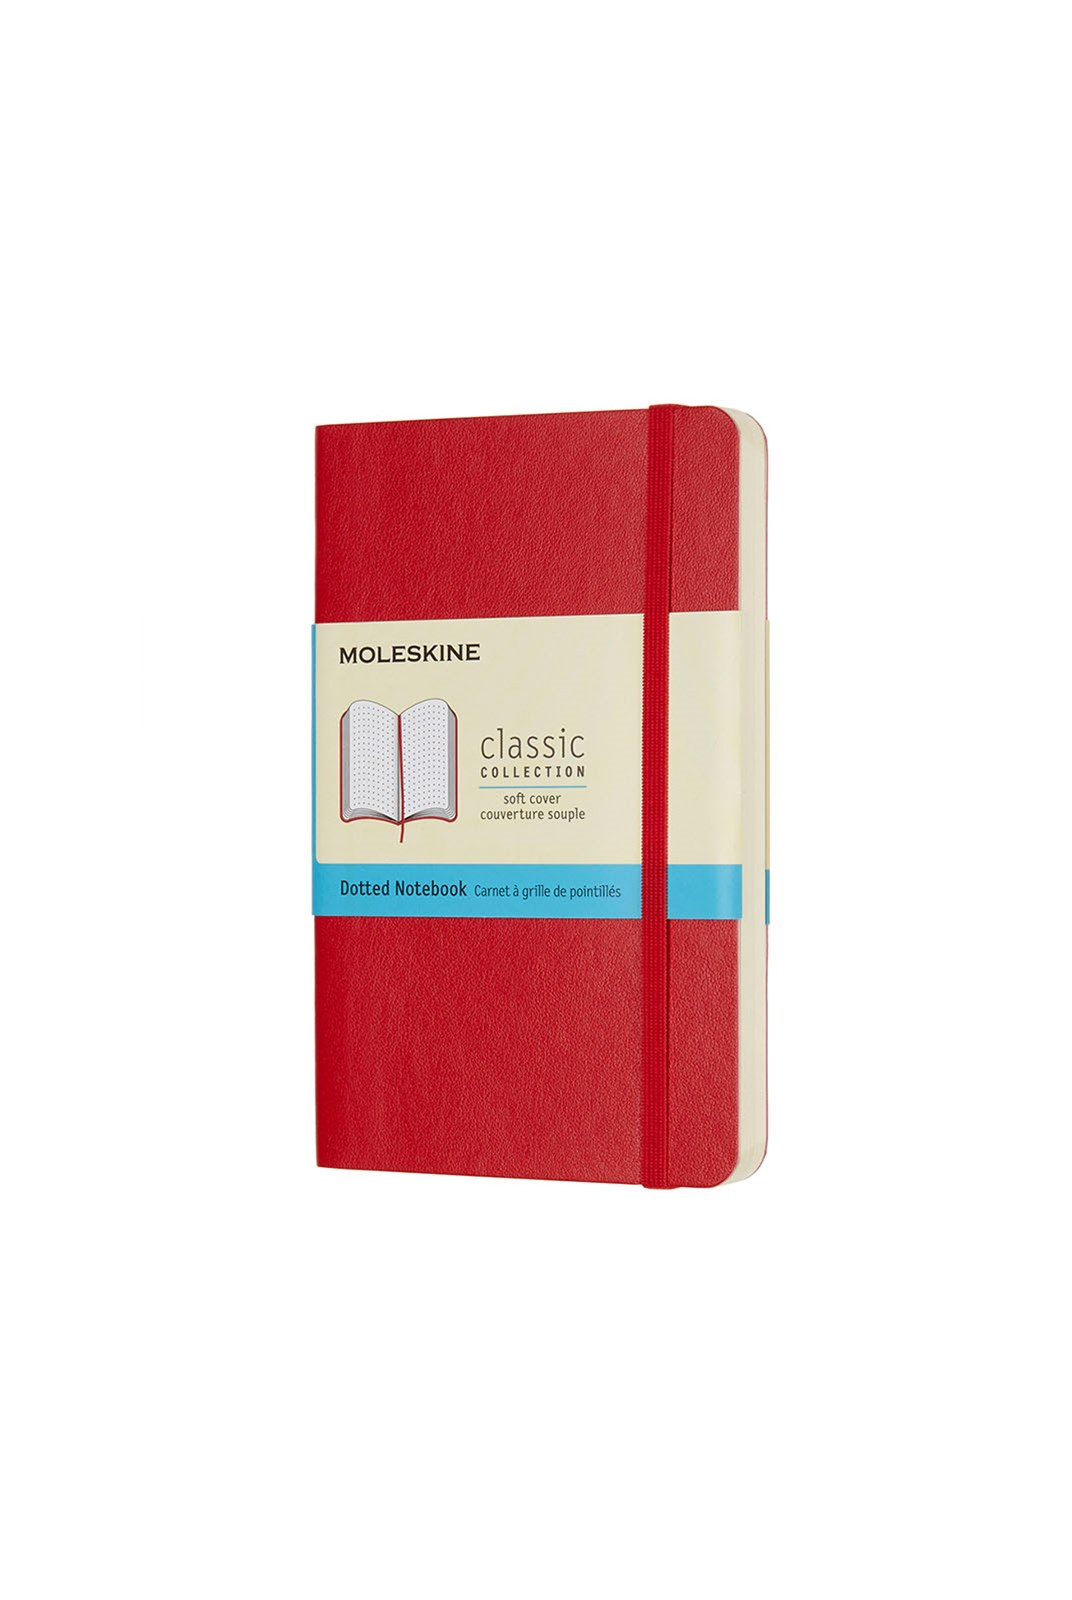 Moleskine - Classic Soft Cover Notebook - Dot Grid - Pocket - Scarlet Red